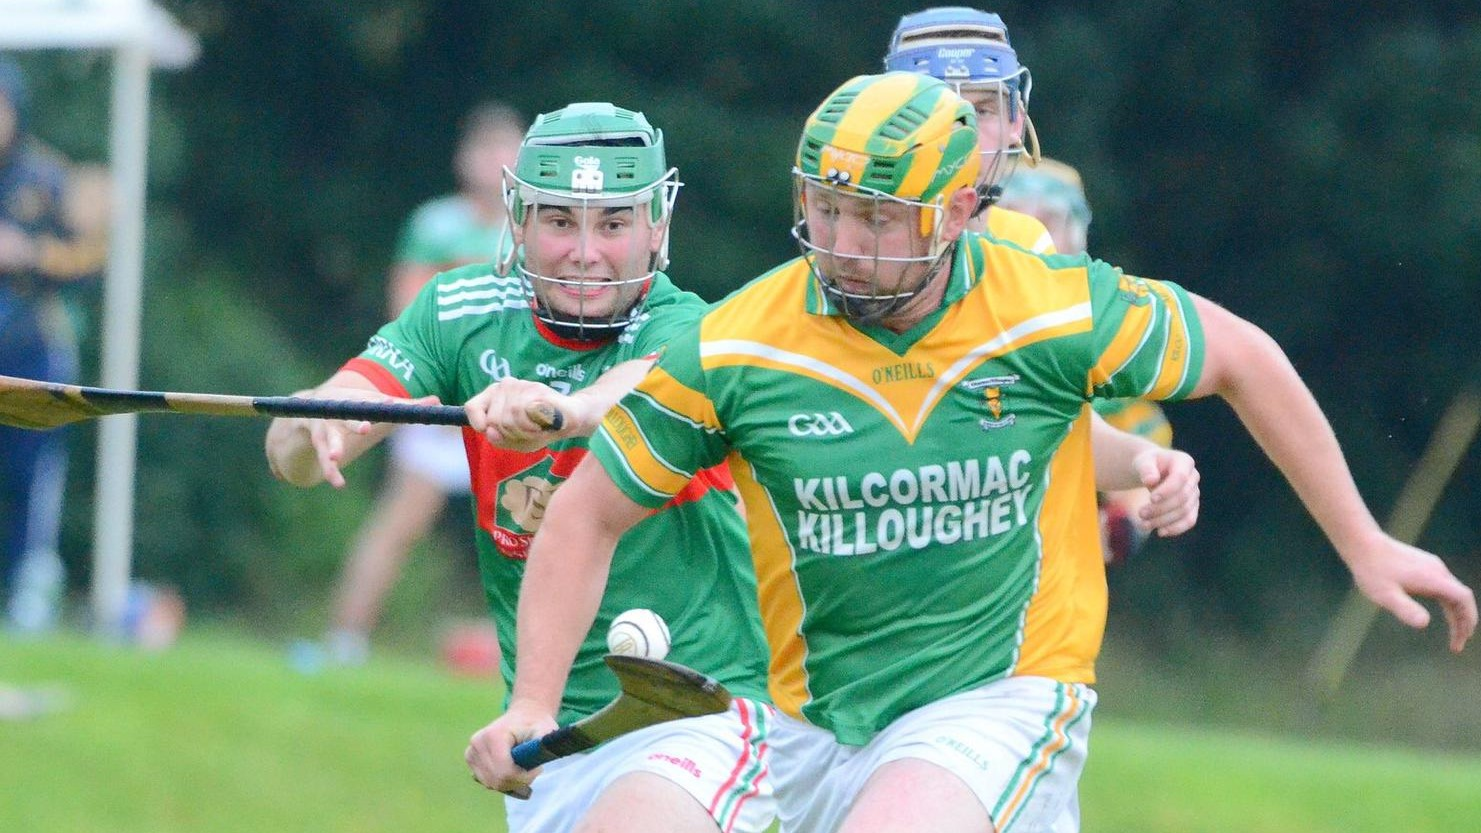 Several Closely-Fought Hurling Championship Games